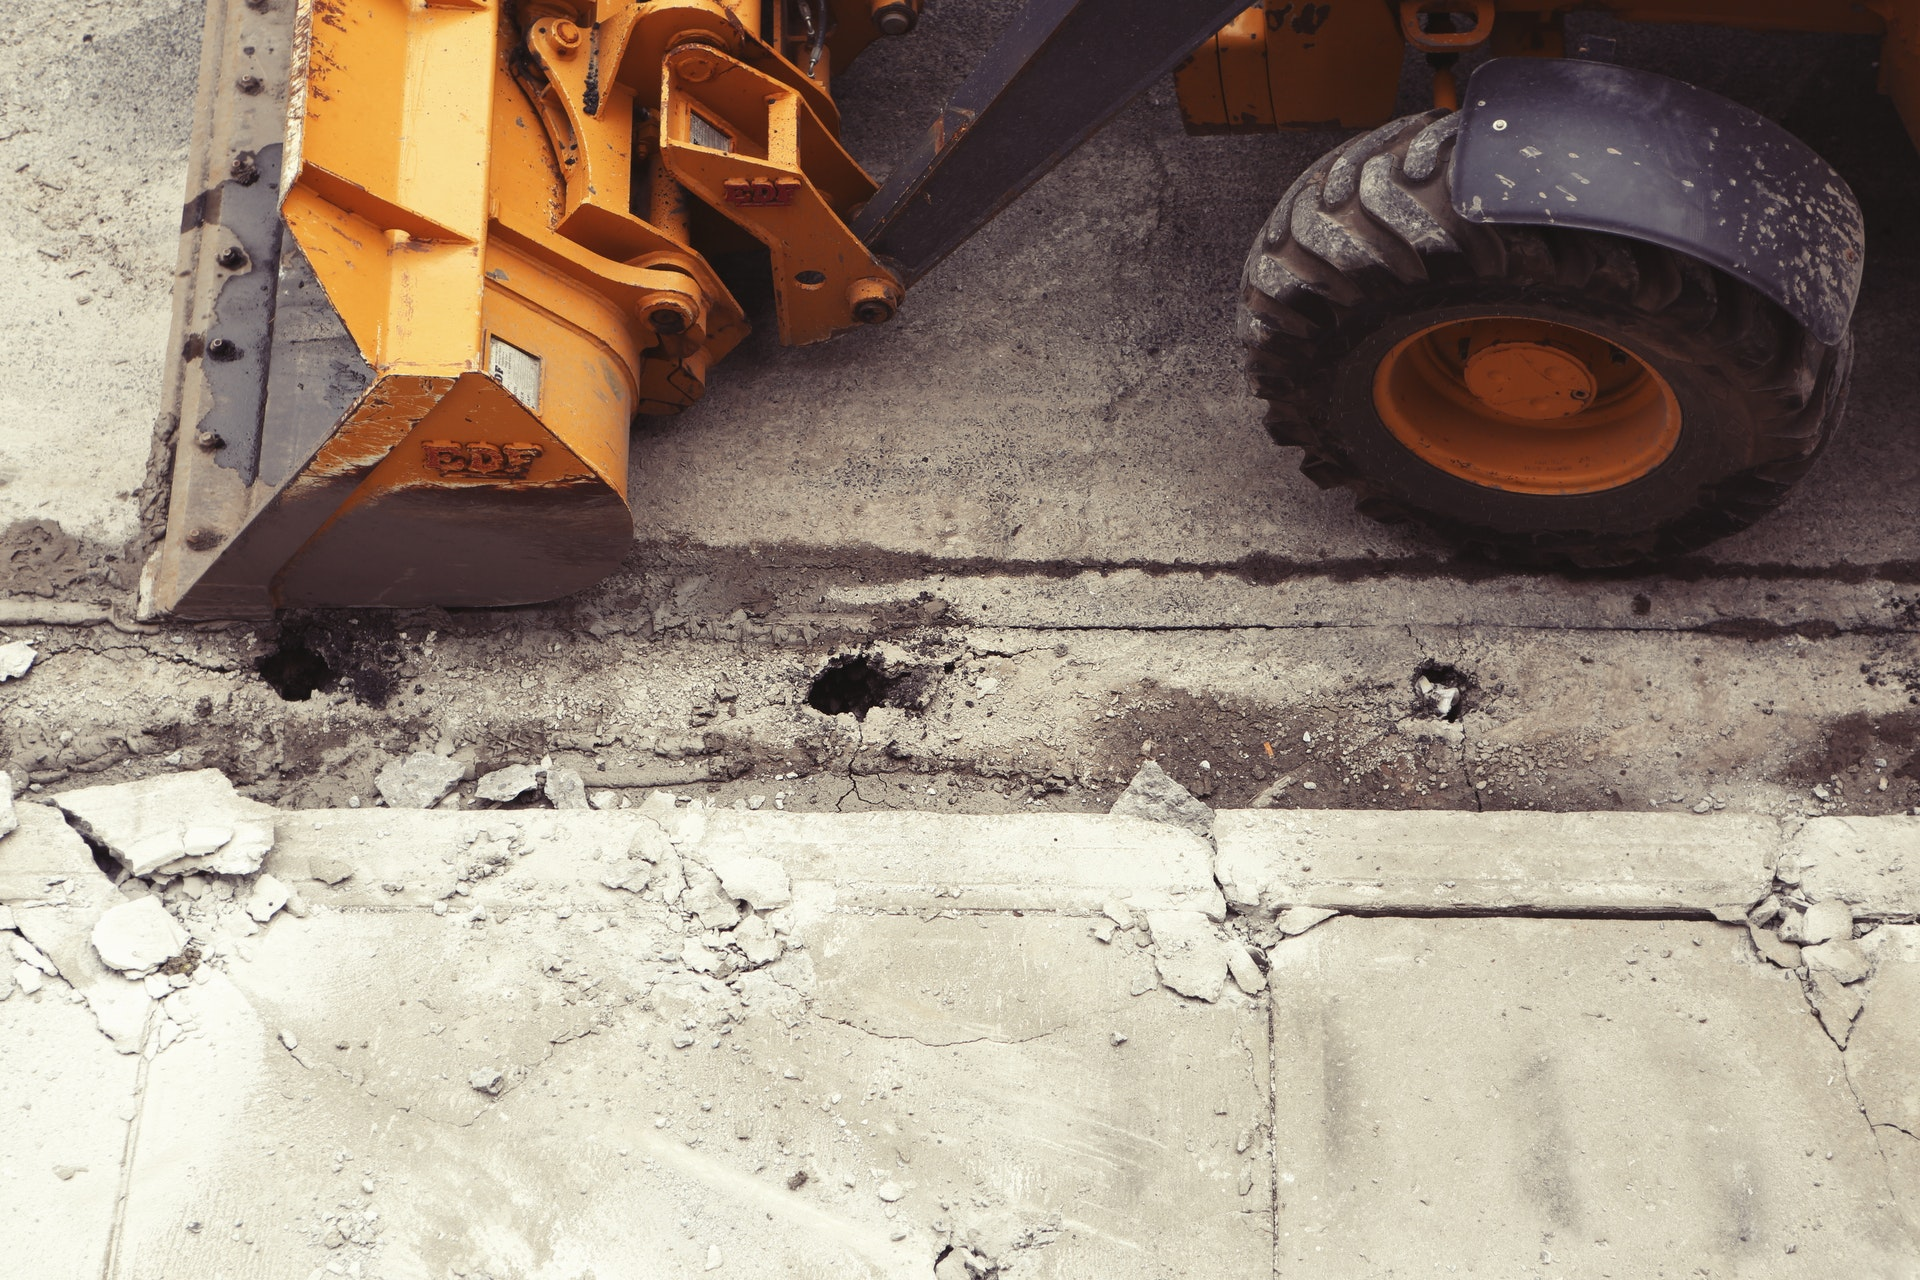 A company that designs, manufactures and distributes construction materials is fined after worker sustains life altering injuries